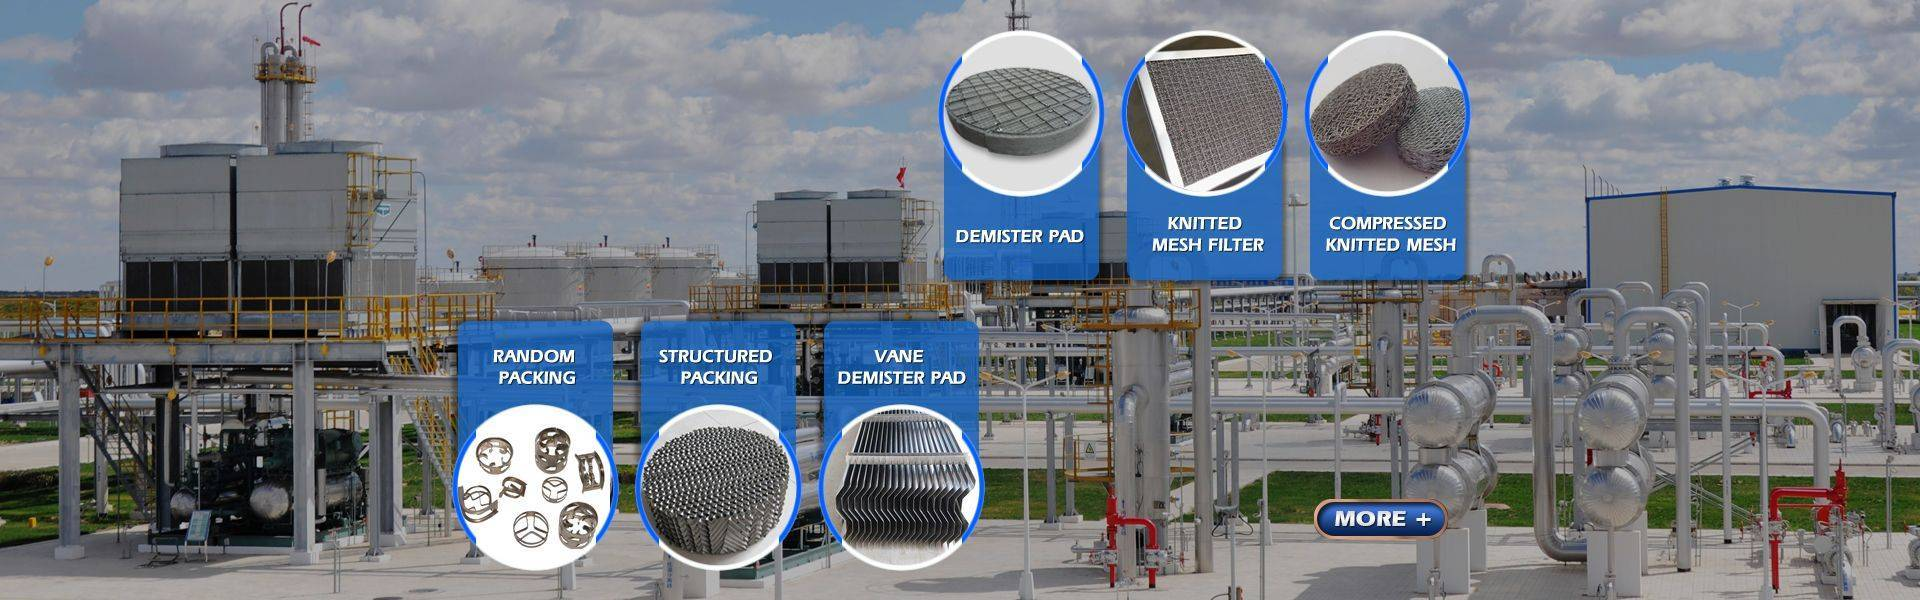 Wire Mesh Demister Pads for Liquid and Gas Separating Problems